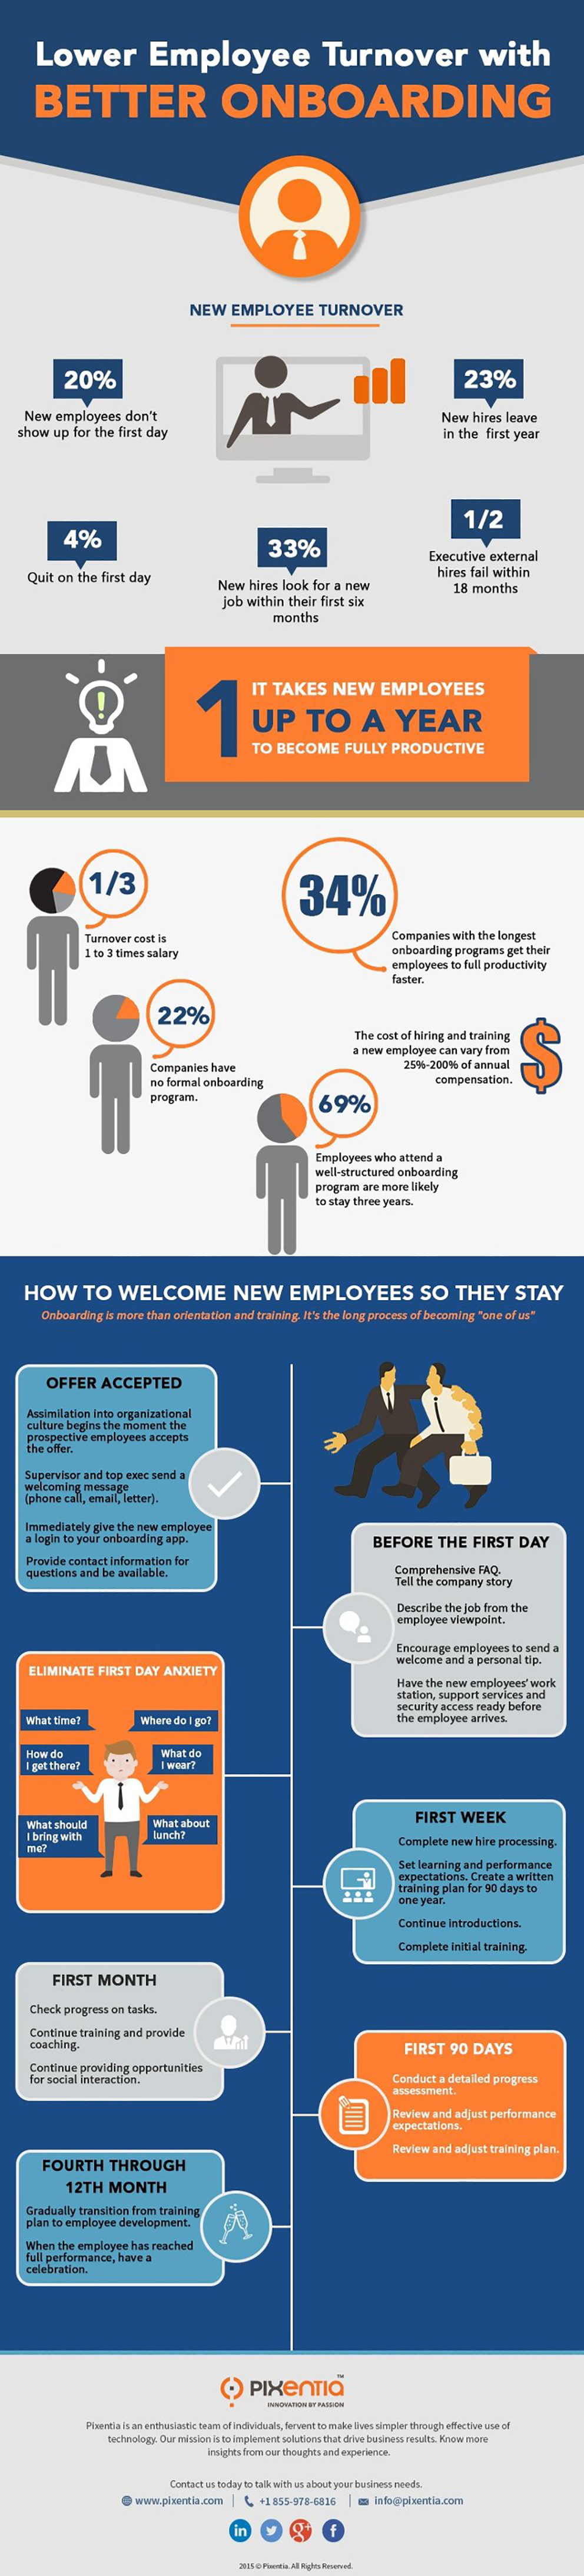 Lower_Employee_Turnover_with_Better_Onboarding